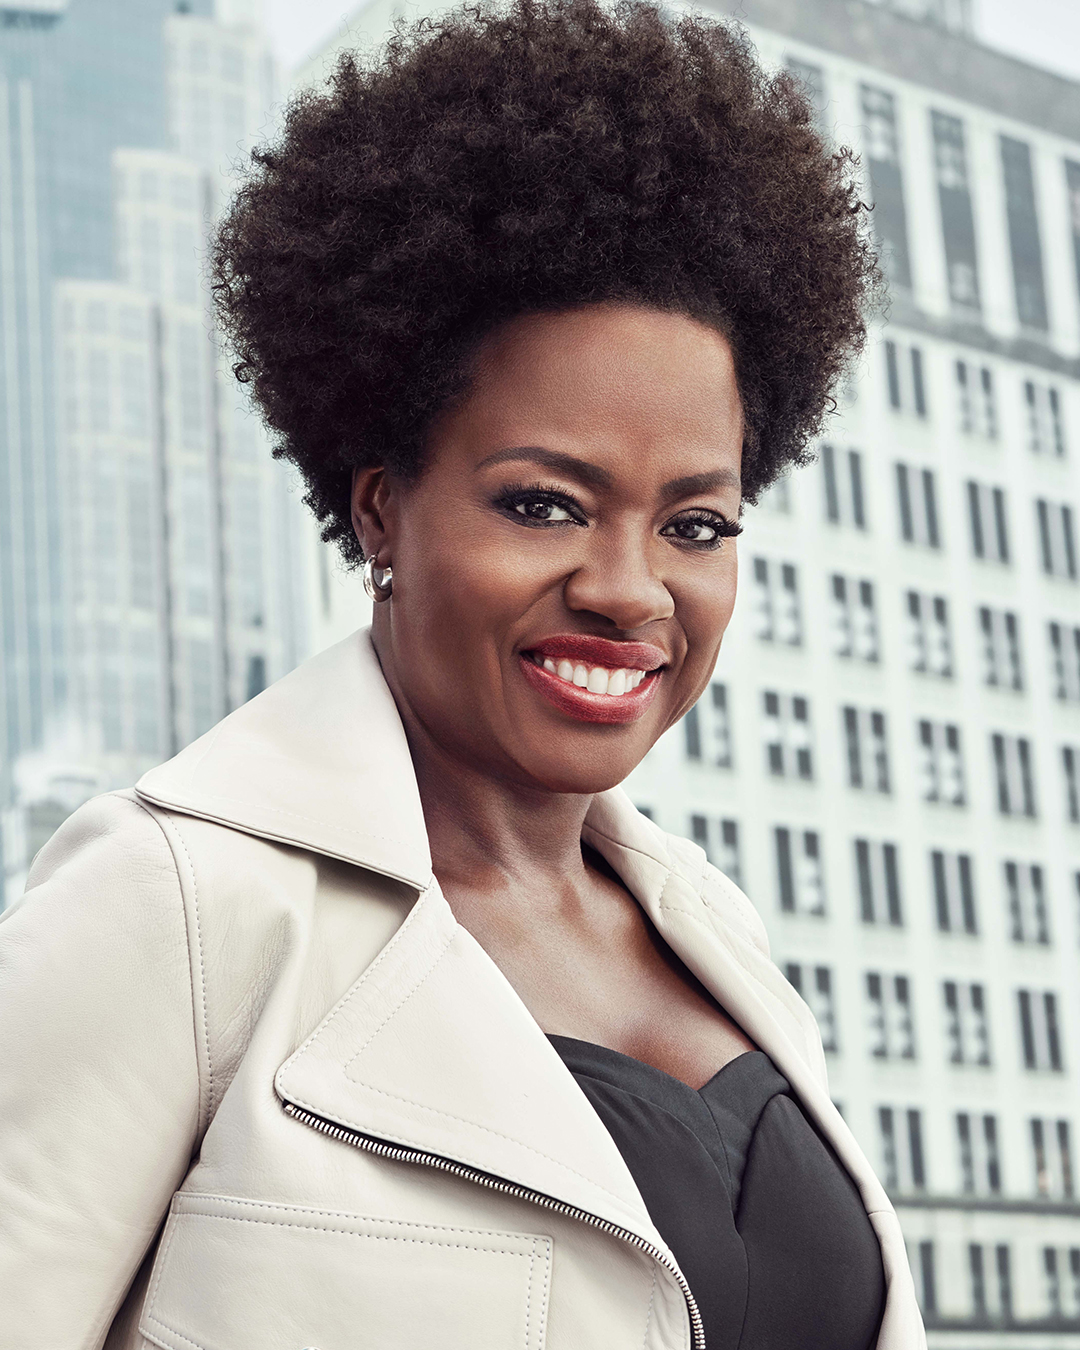 Viola Davis, 54, Named L'Oréal Paris' New Brand Ambassador: 'It Feels Surreal'